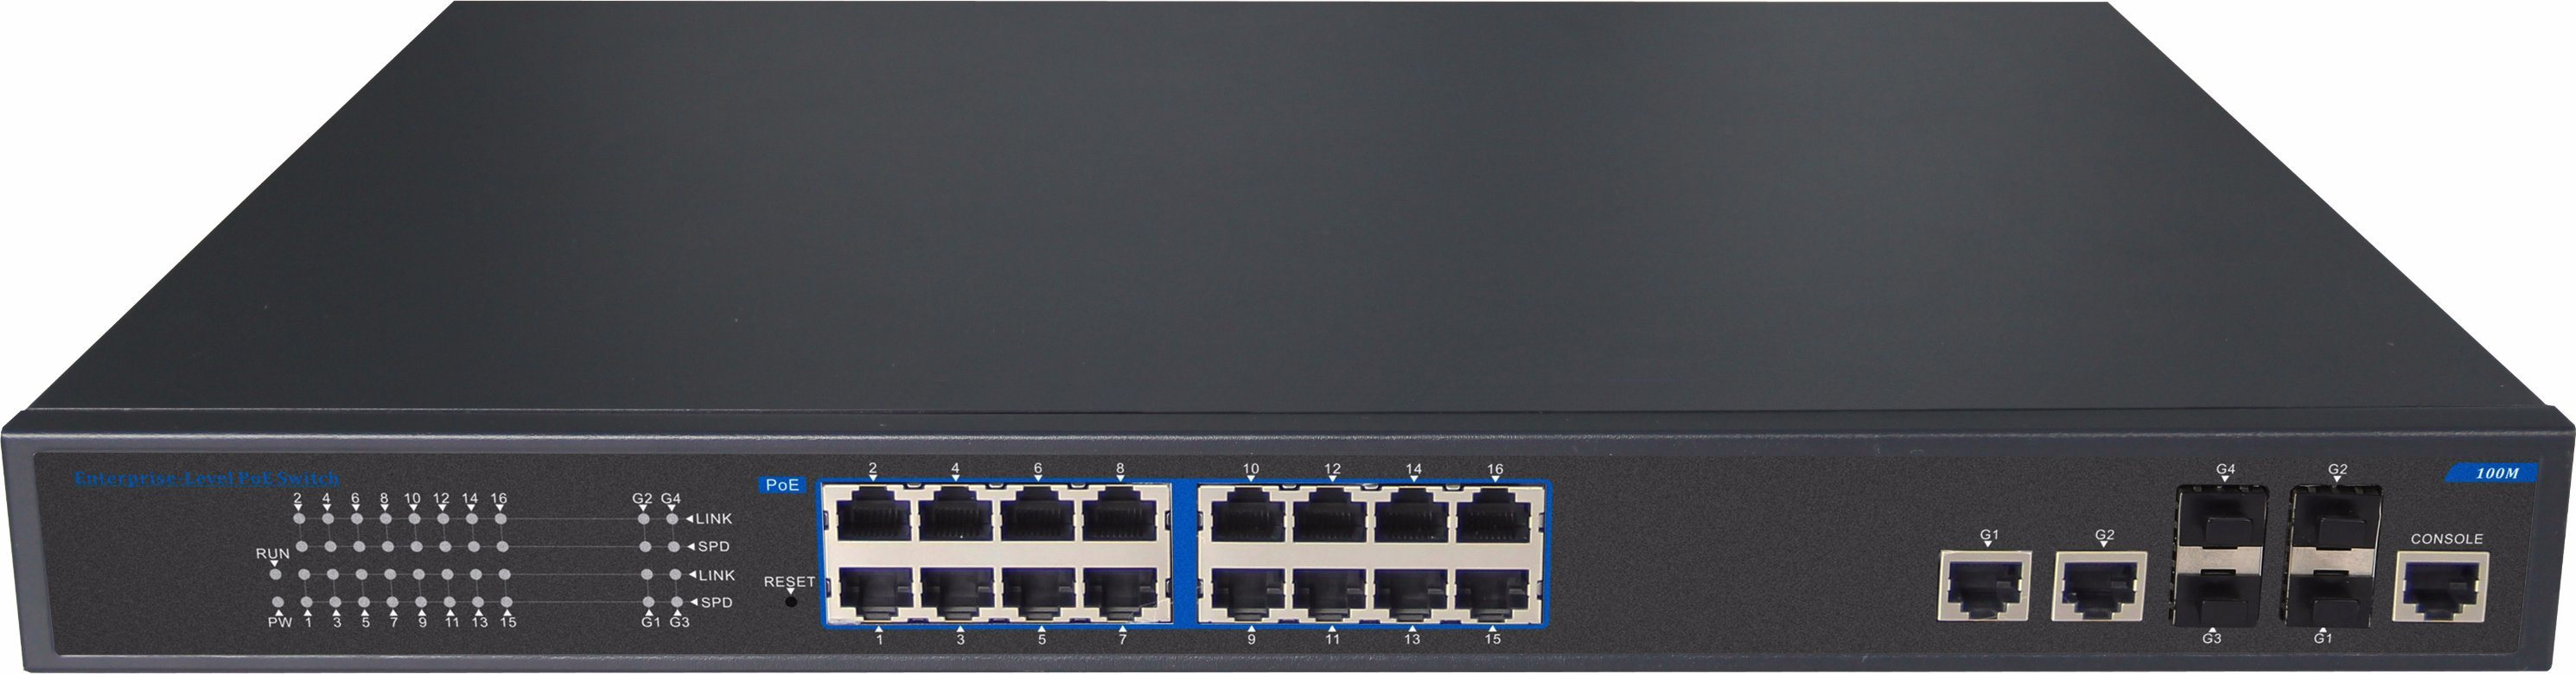 24 Port Managed Poe Fiber Ethernet Network Switch 15.4W